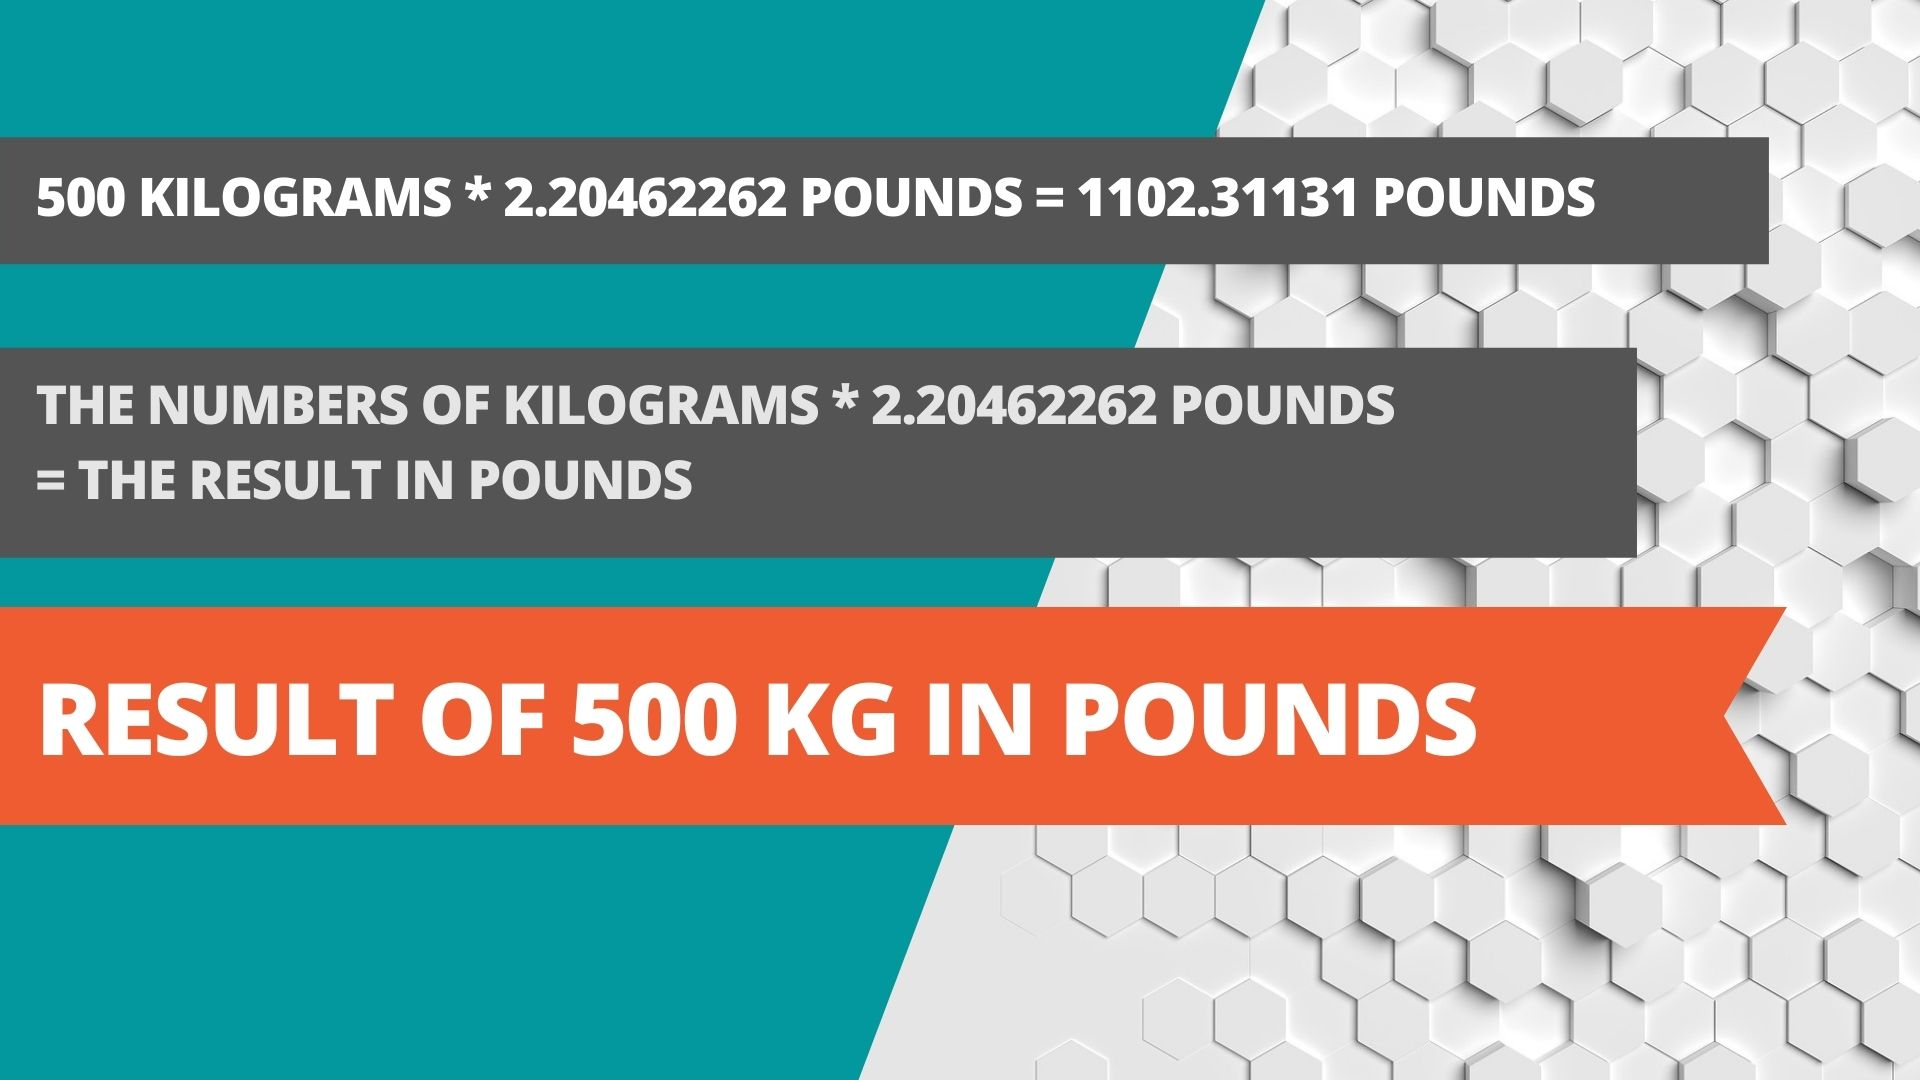 Result of 500 kg in pounds